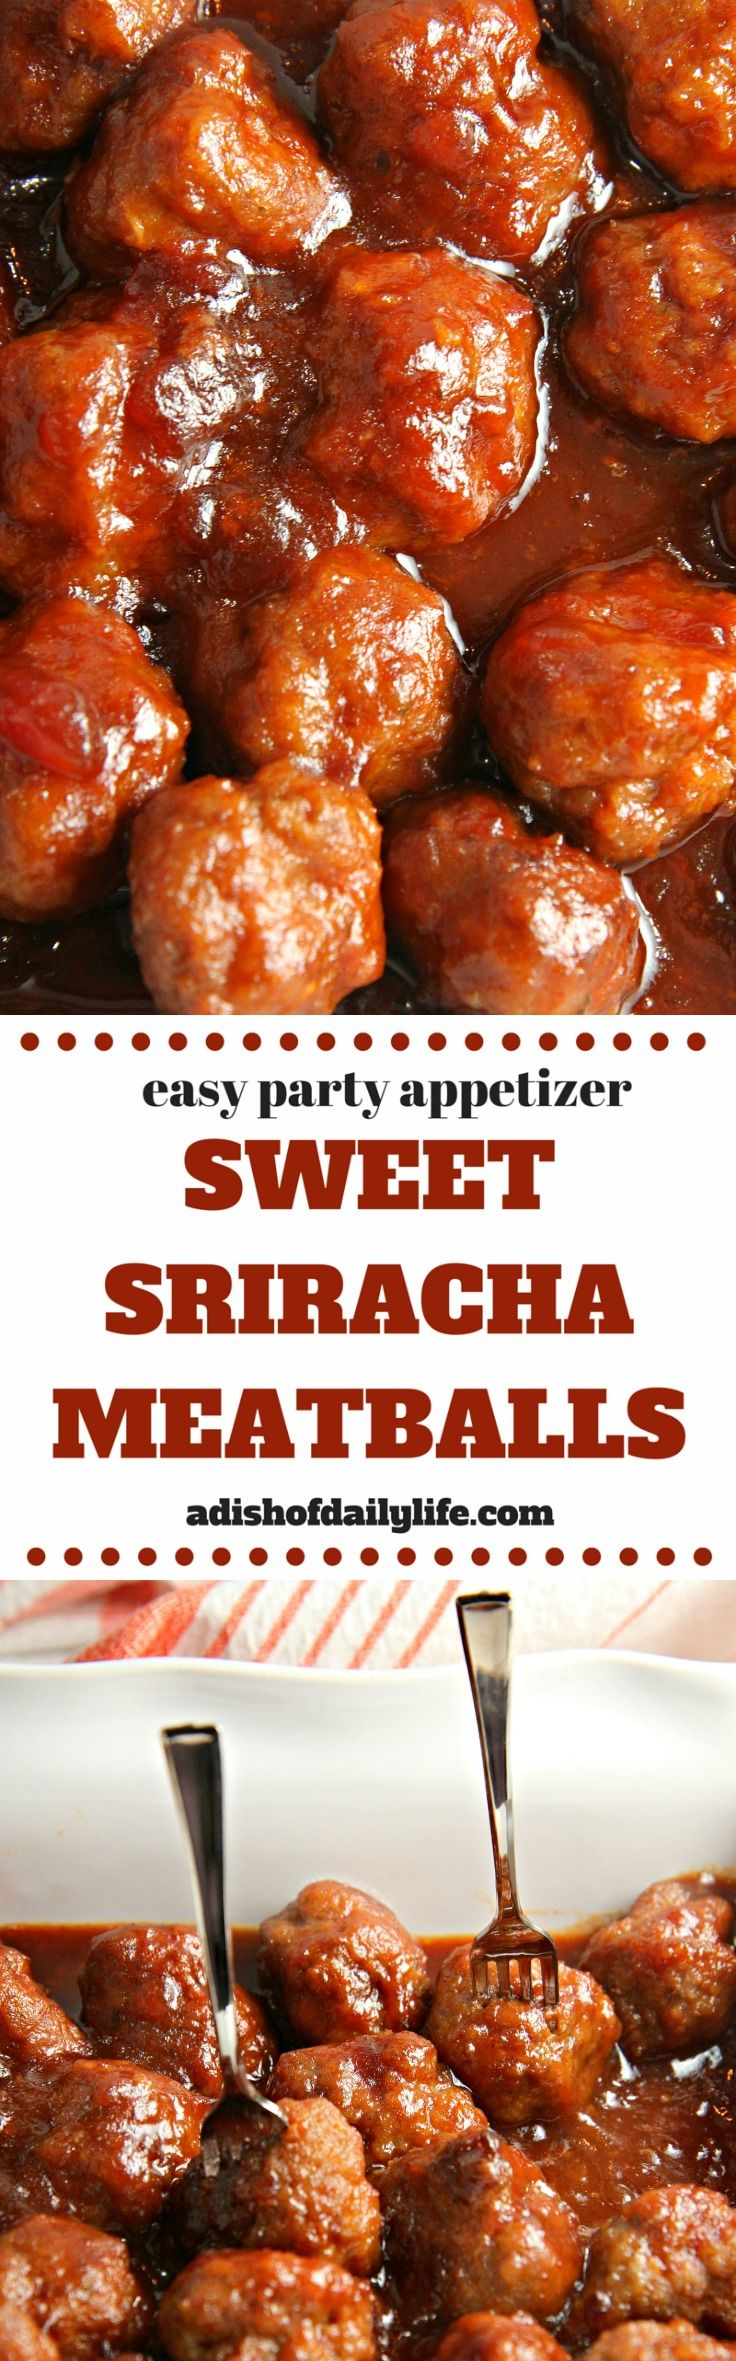 Looking for an easy meatball crockpot appetizer for game day? Sweet pairs with spicy in this Sweet Sriracha Meatballs recipe...the perfect addition to any party menu! You can even tone down the spiciness for a more kid friendly dish.